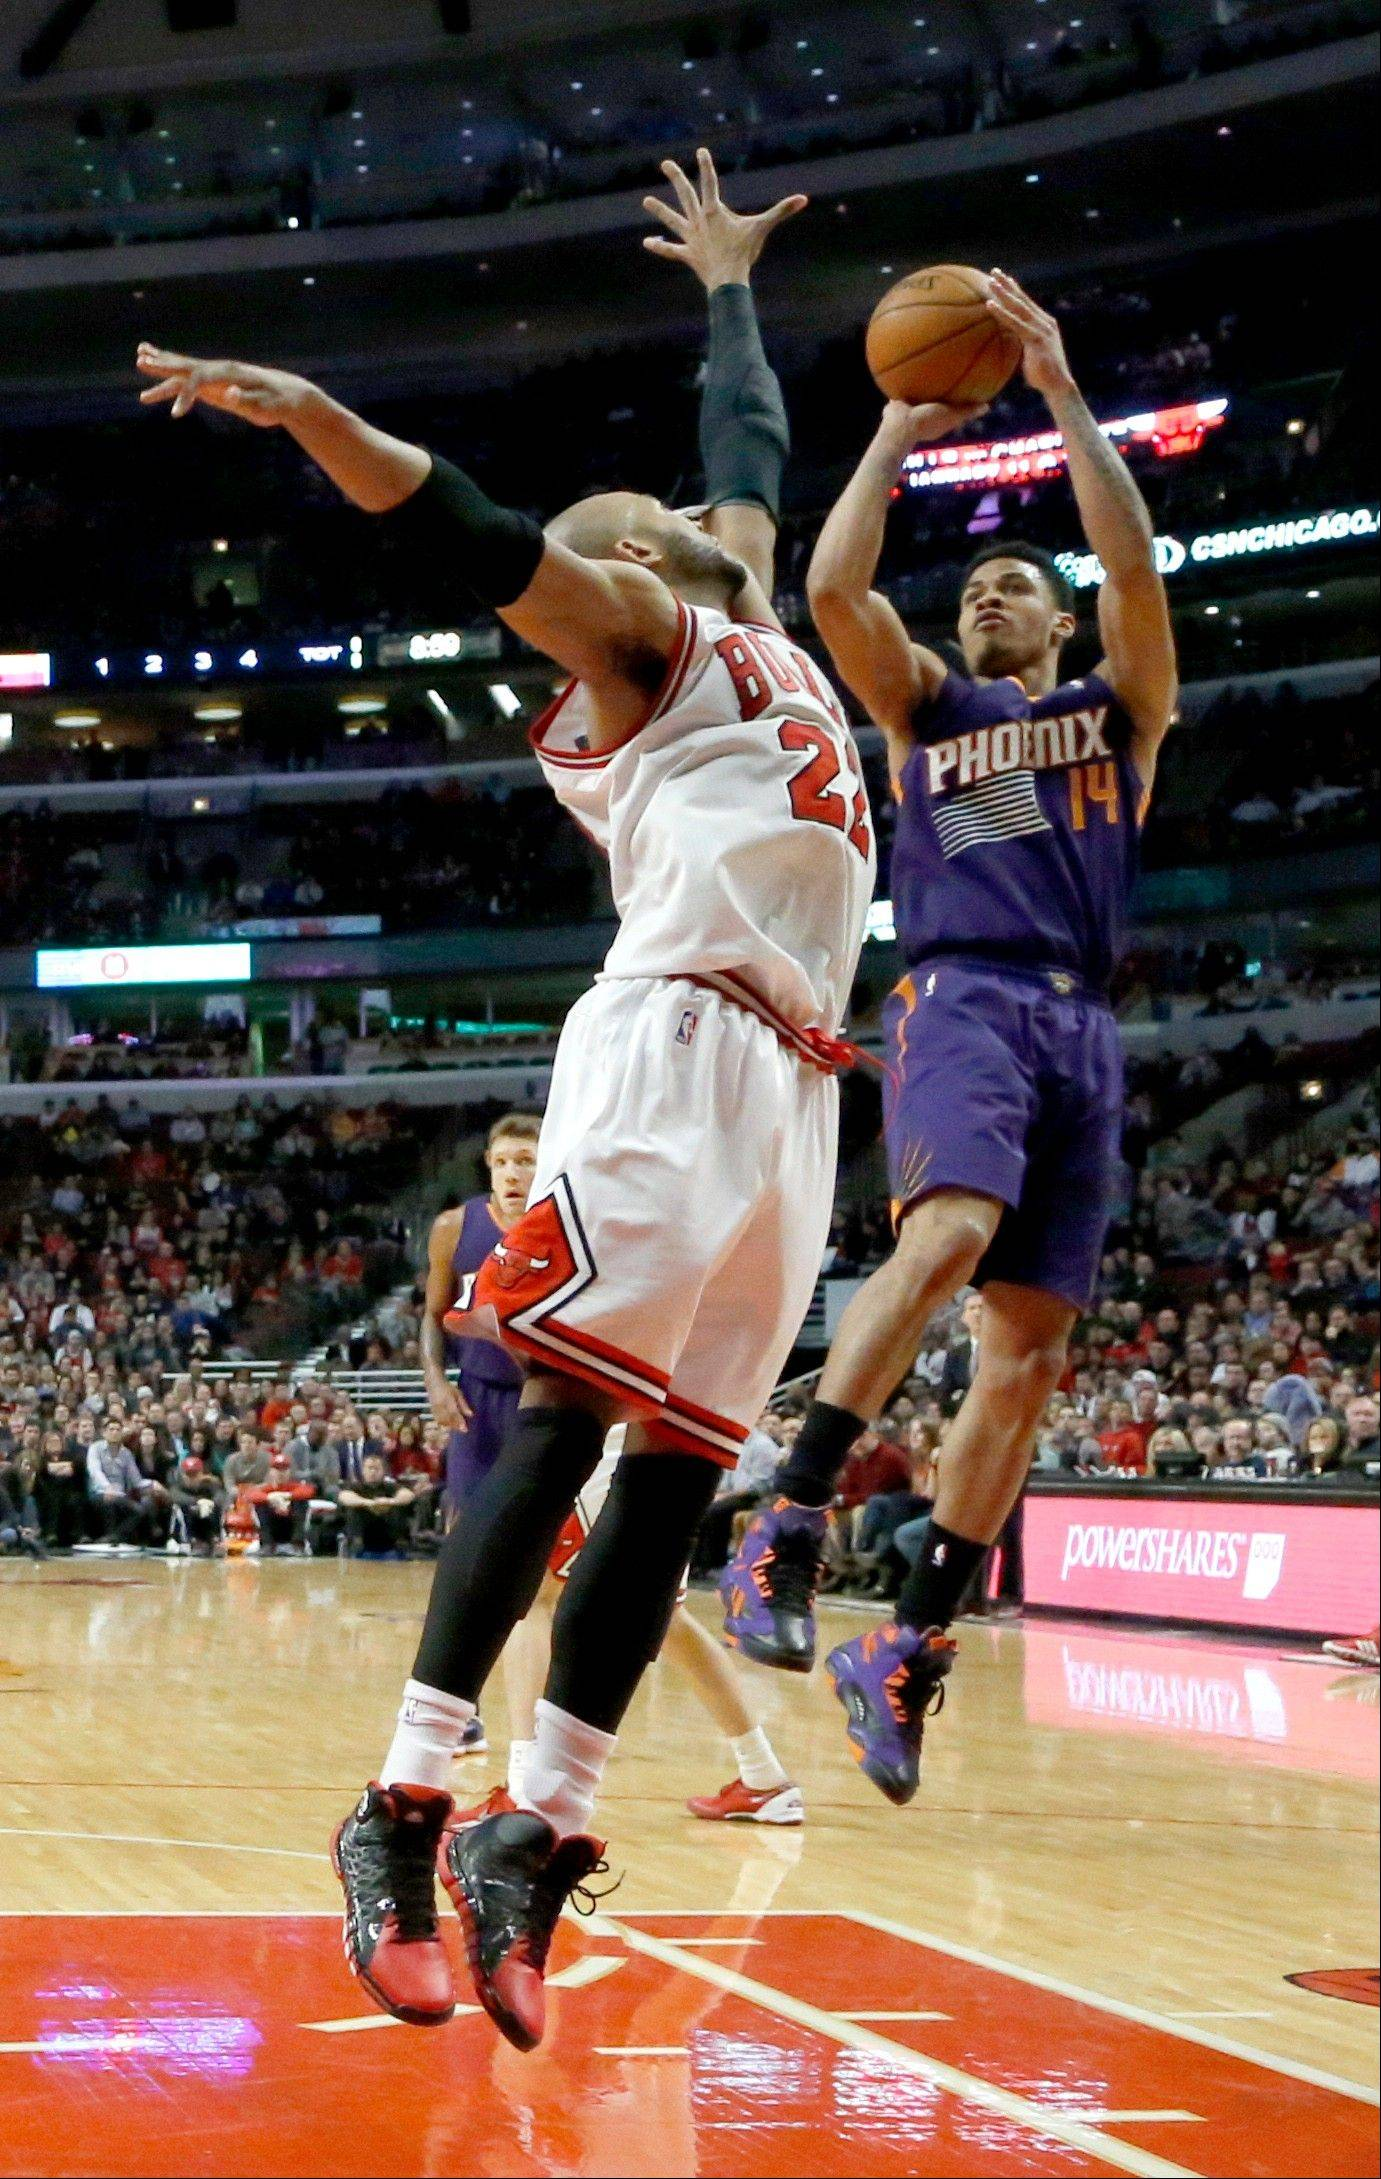 The Bulls� Taj Gibson goes up to defend a shot by the Suns� Gerald Green on Tuesday night at the United Center. The Bulls won 92-87.